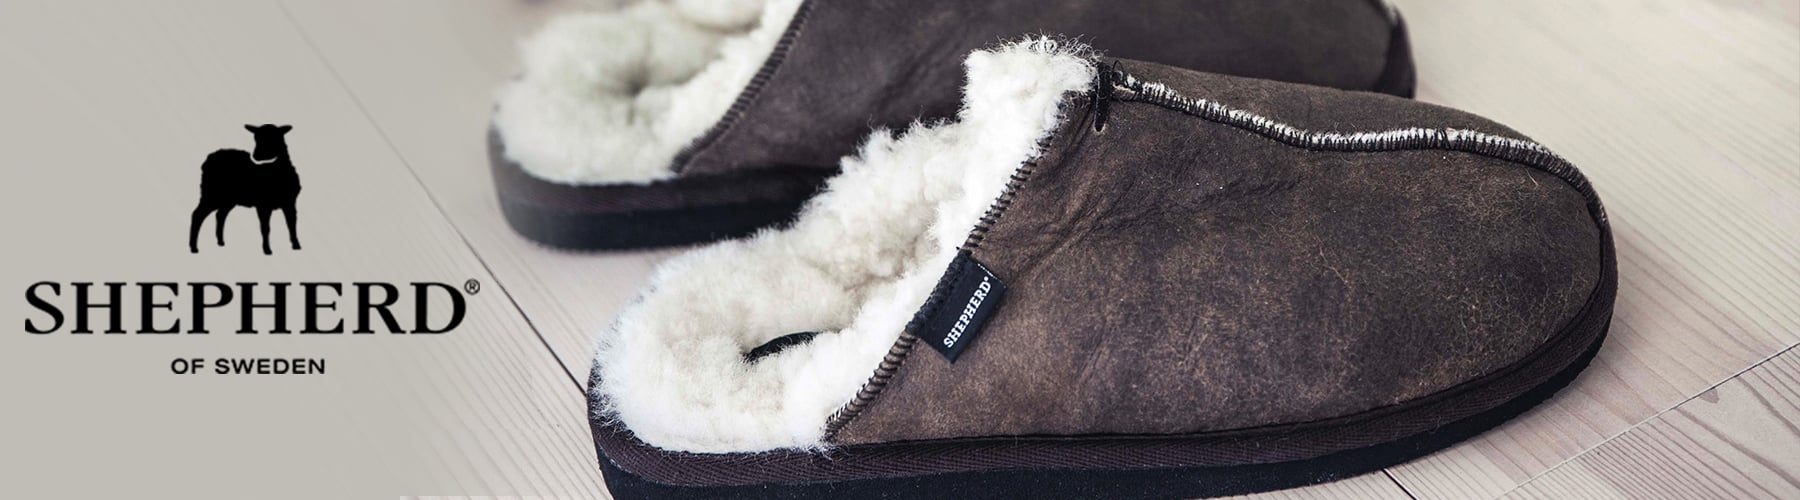 76335265ab6 There are many advantages to using genuine sheepskin rather than synthetic  substitutes. Sheepskin is warm when it s cold